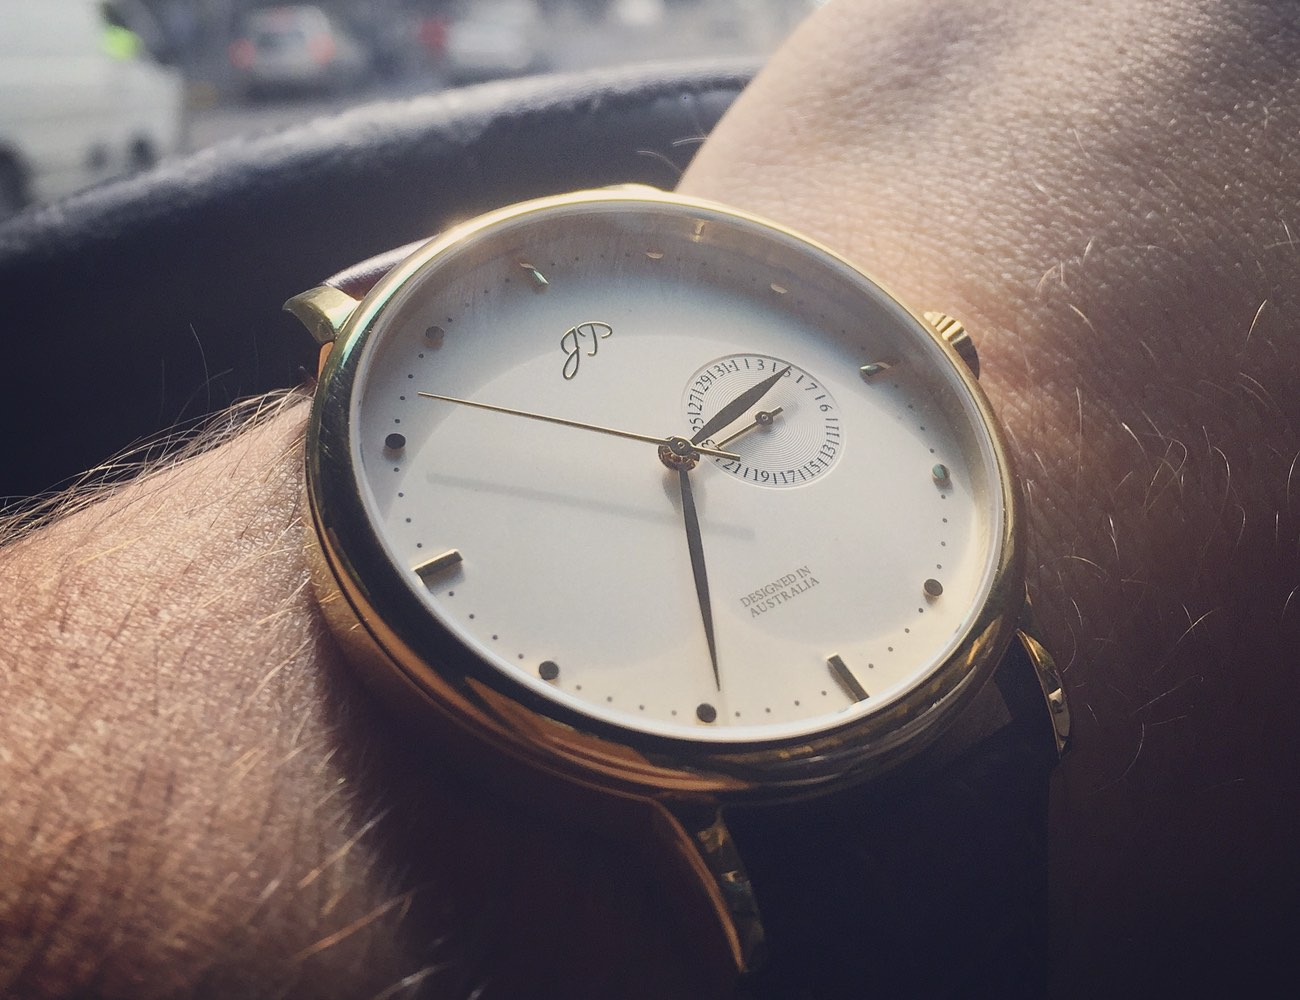 The Bearing – A Watch For A Cause